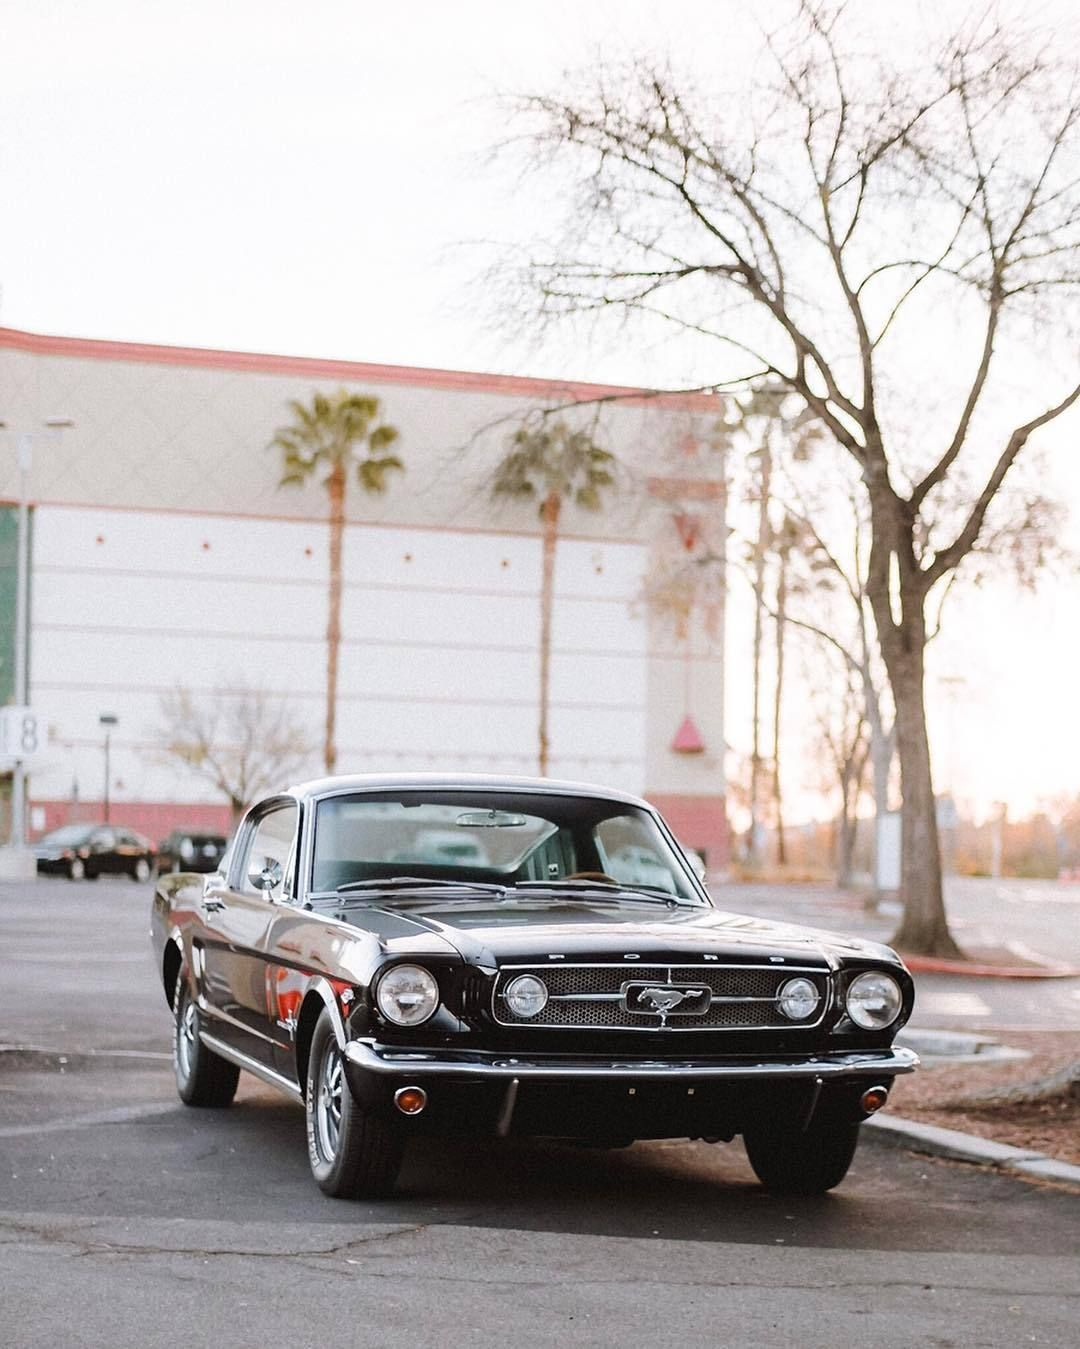 Ford Mustang Fastback, Mustang, 1960s Cars